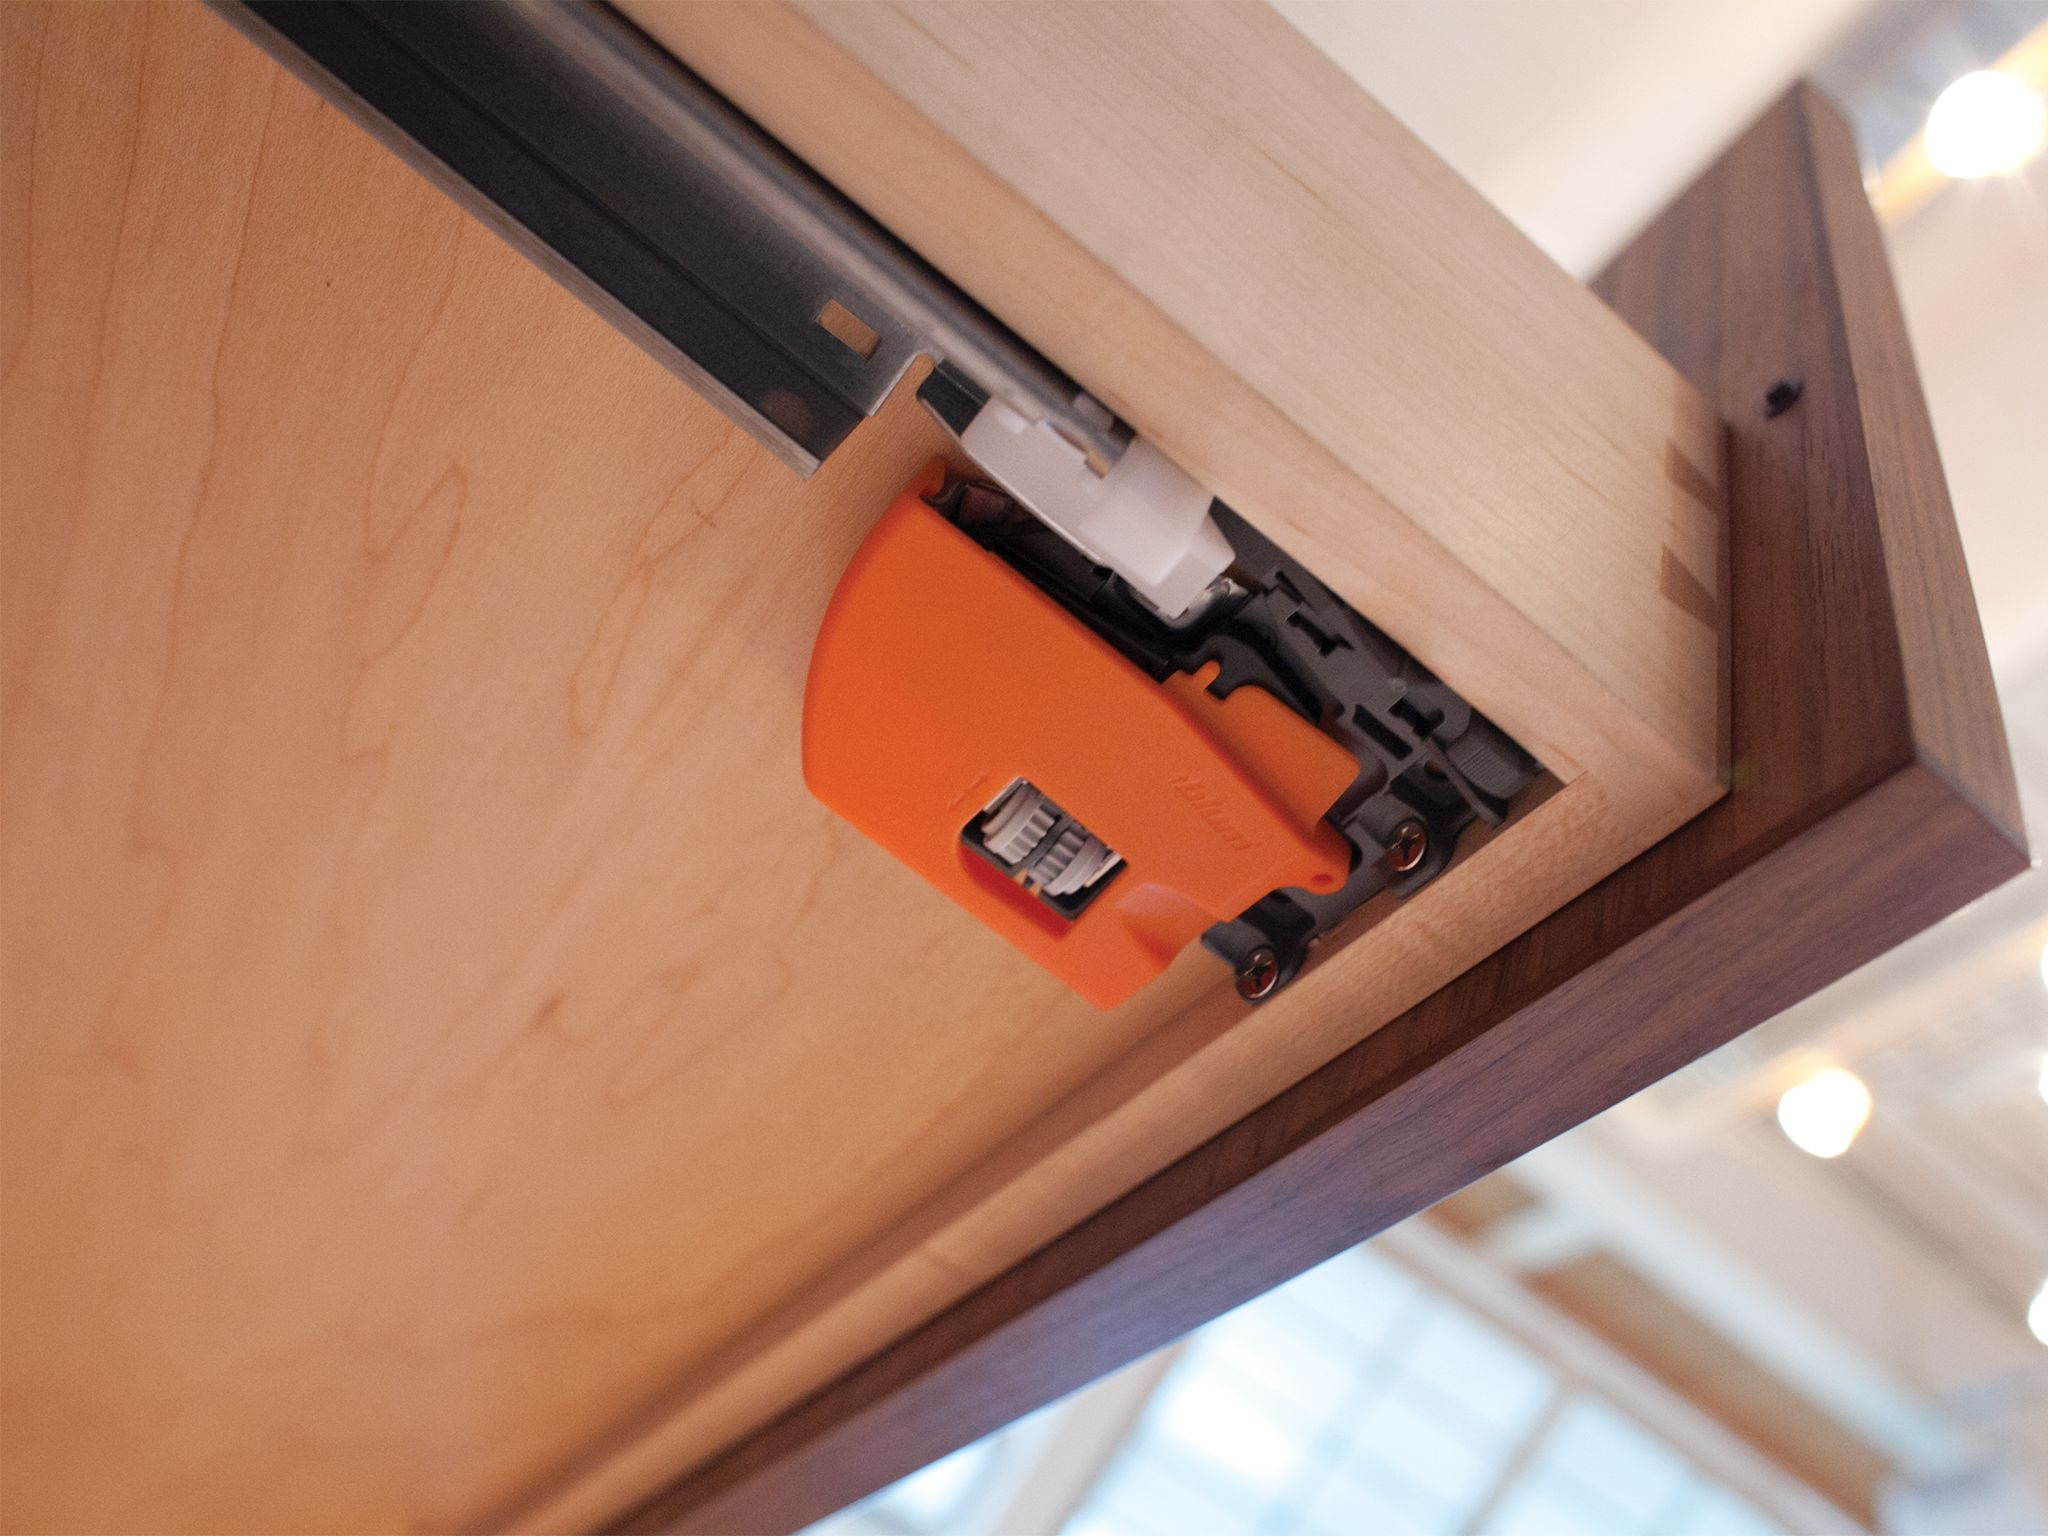 Blum S Tandem Plus Blumotion Runners Are The Latest